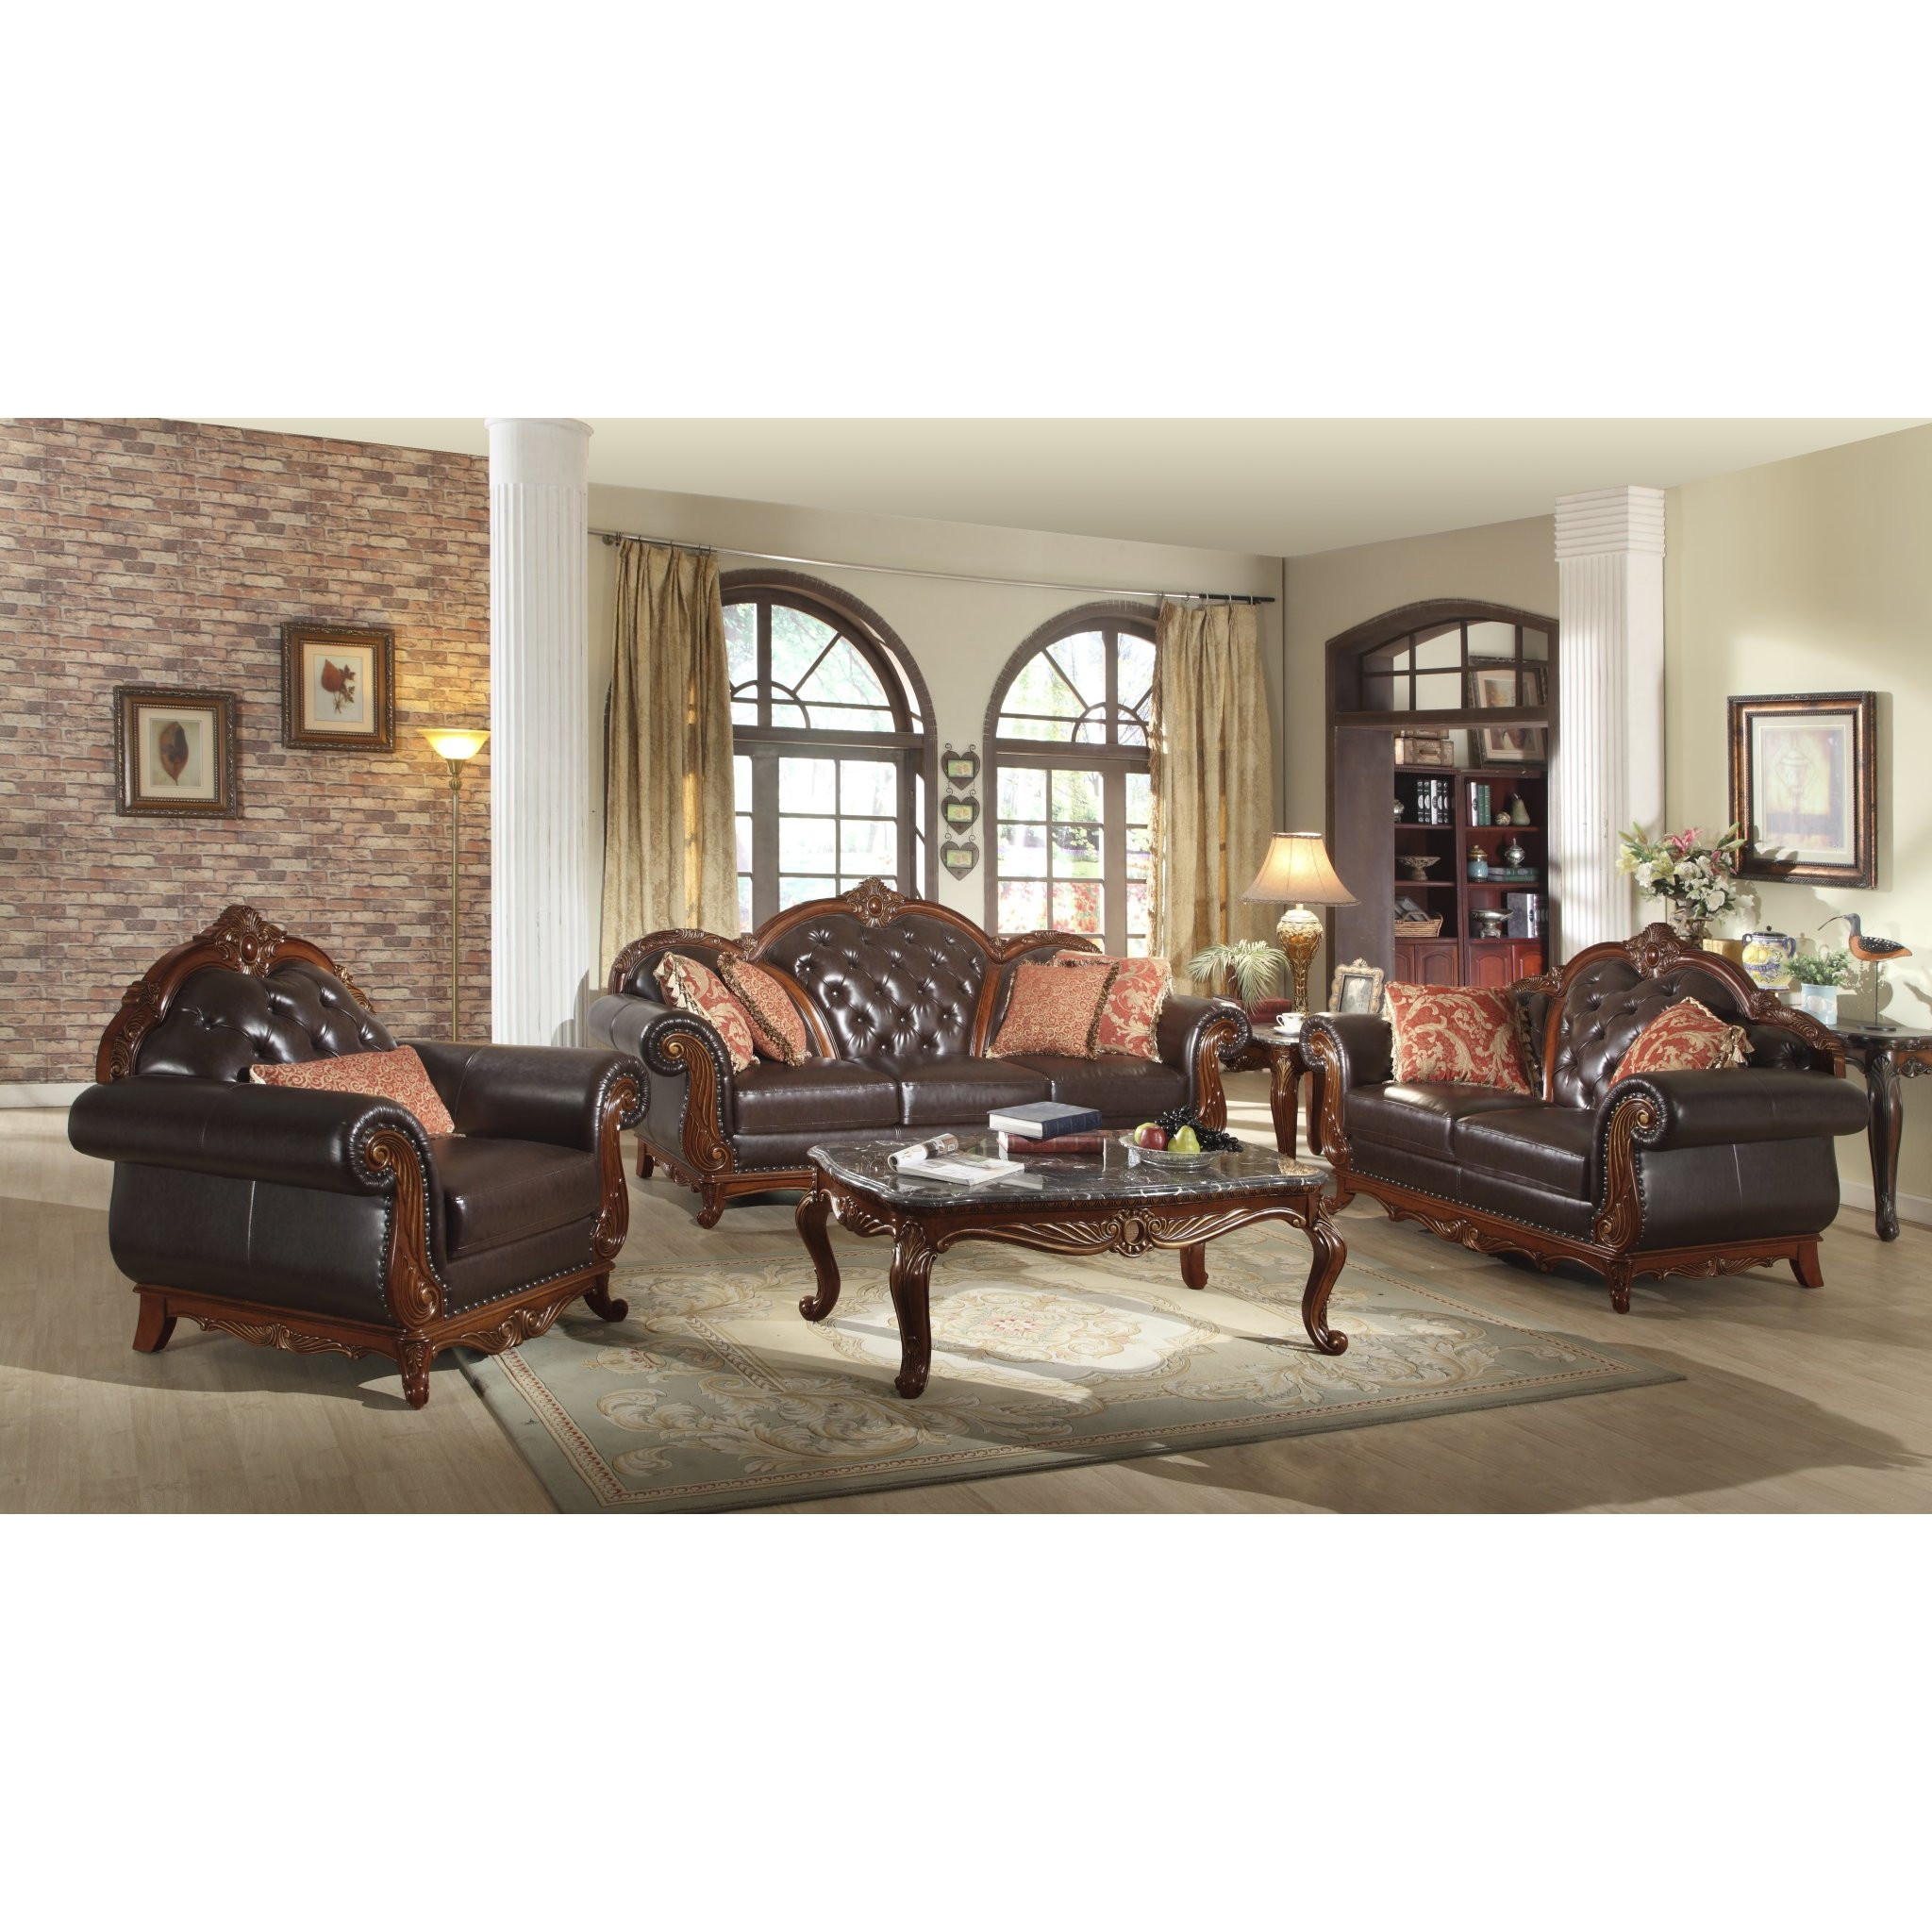 Best ideas about Wayfair Living Room Furniture . Save or Pin Bellini Living Room Set Now.